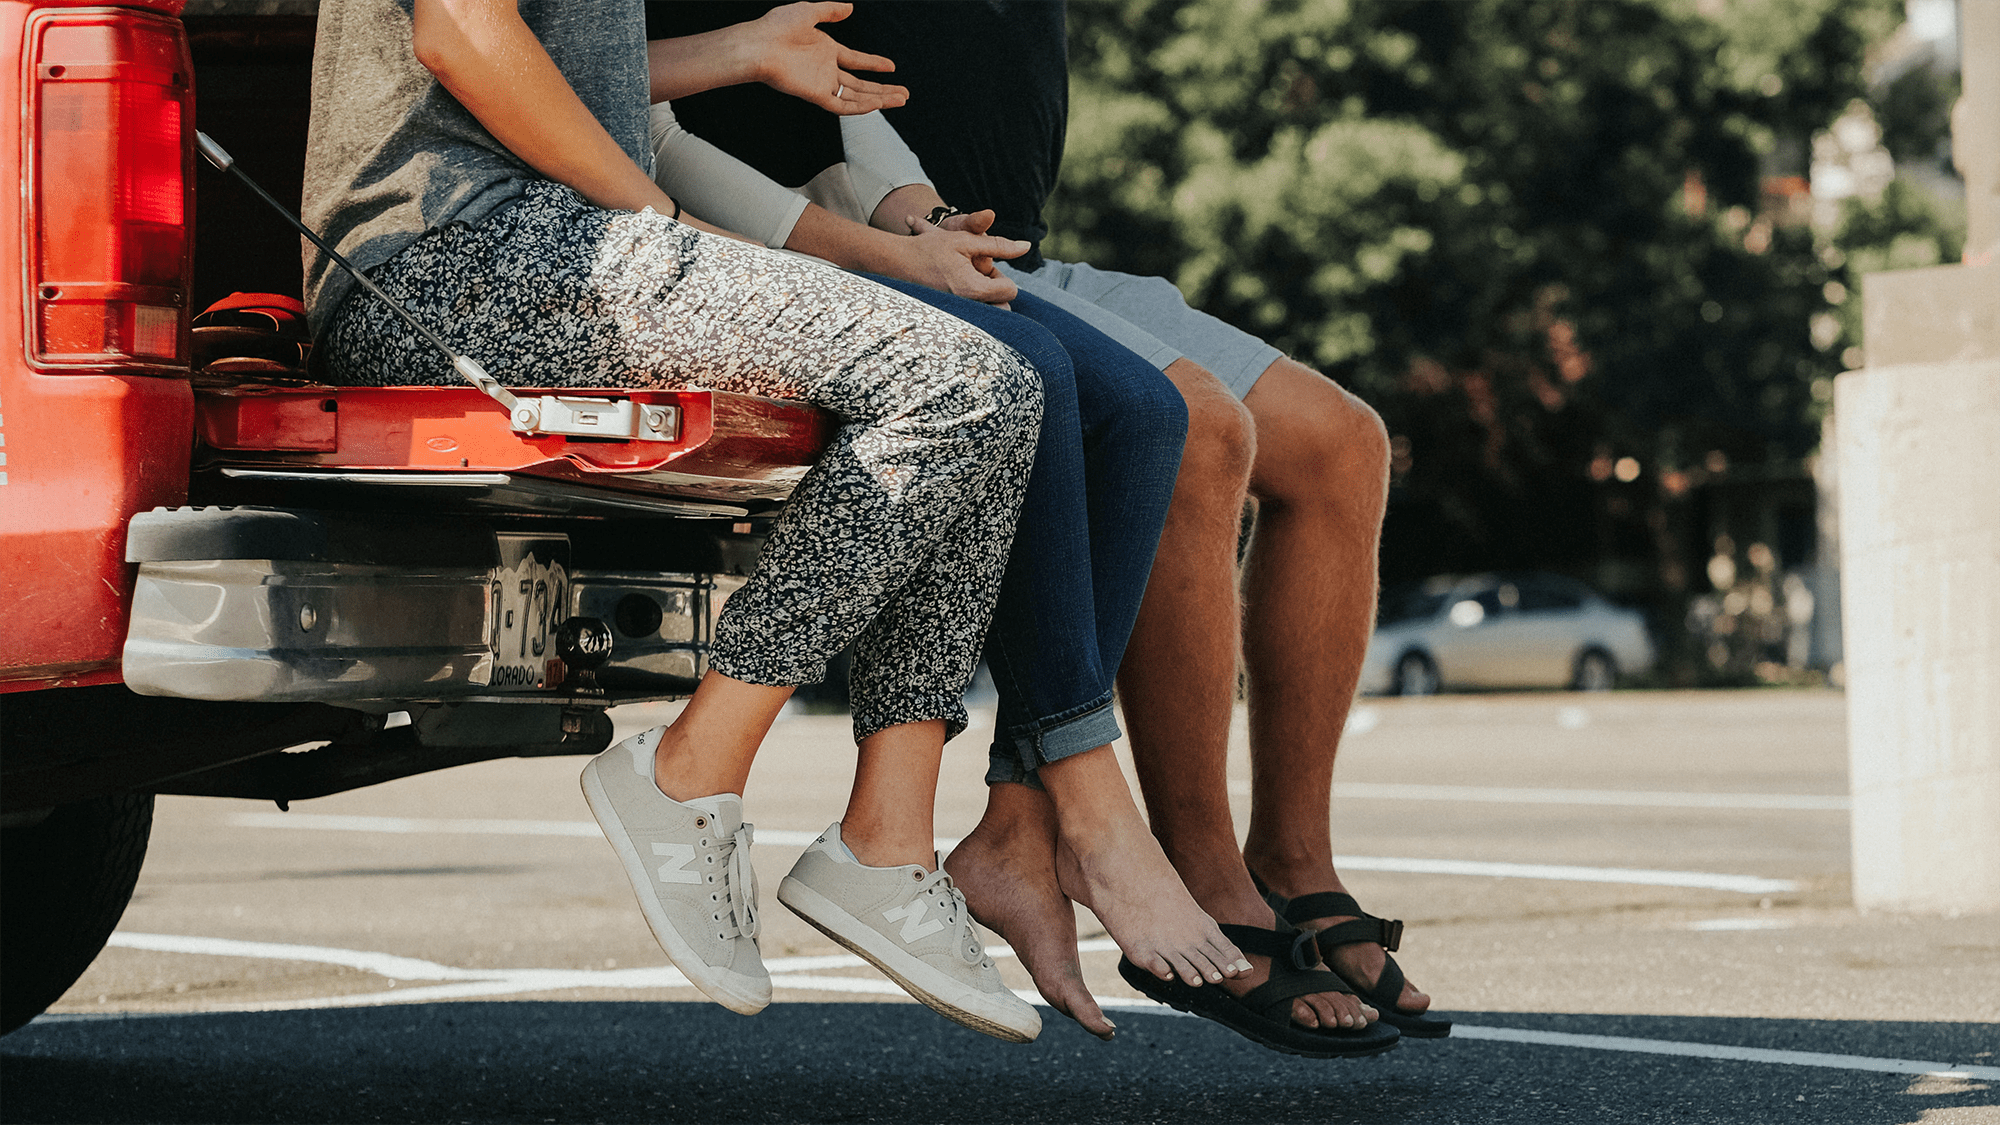 three people legs and shoes visible sitting on edge of car trunk